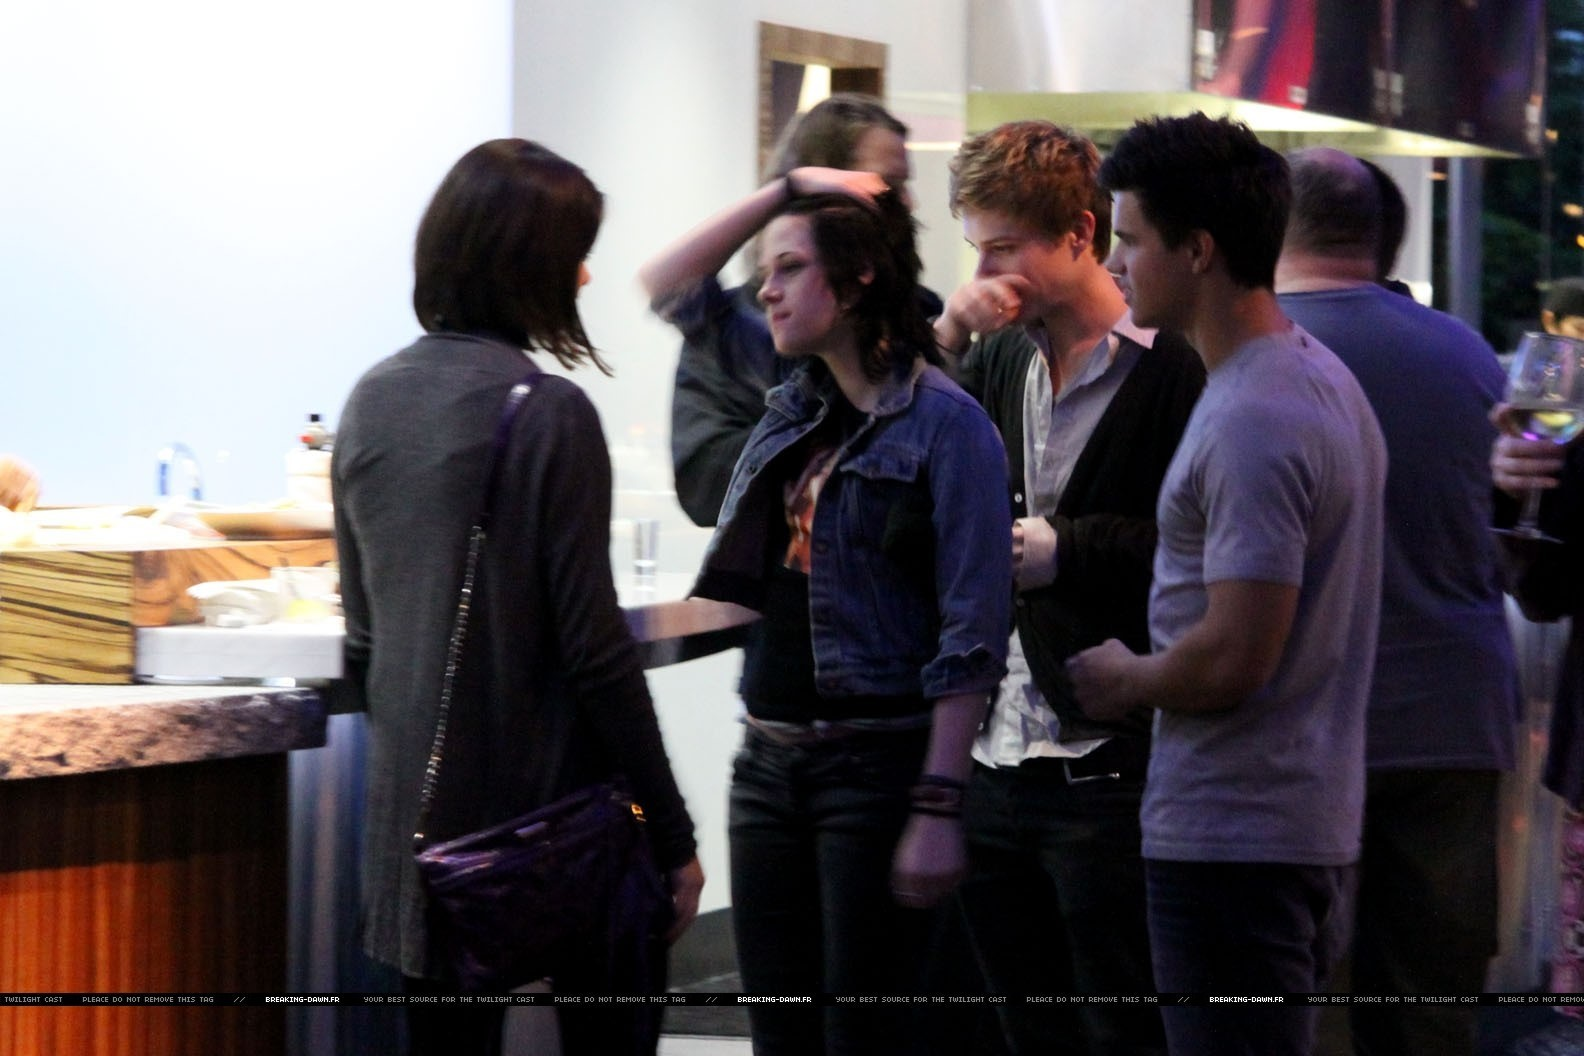 More of Twilight cast at restaurant